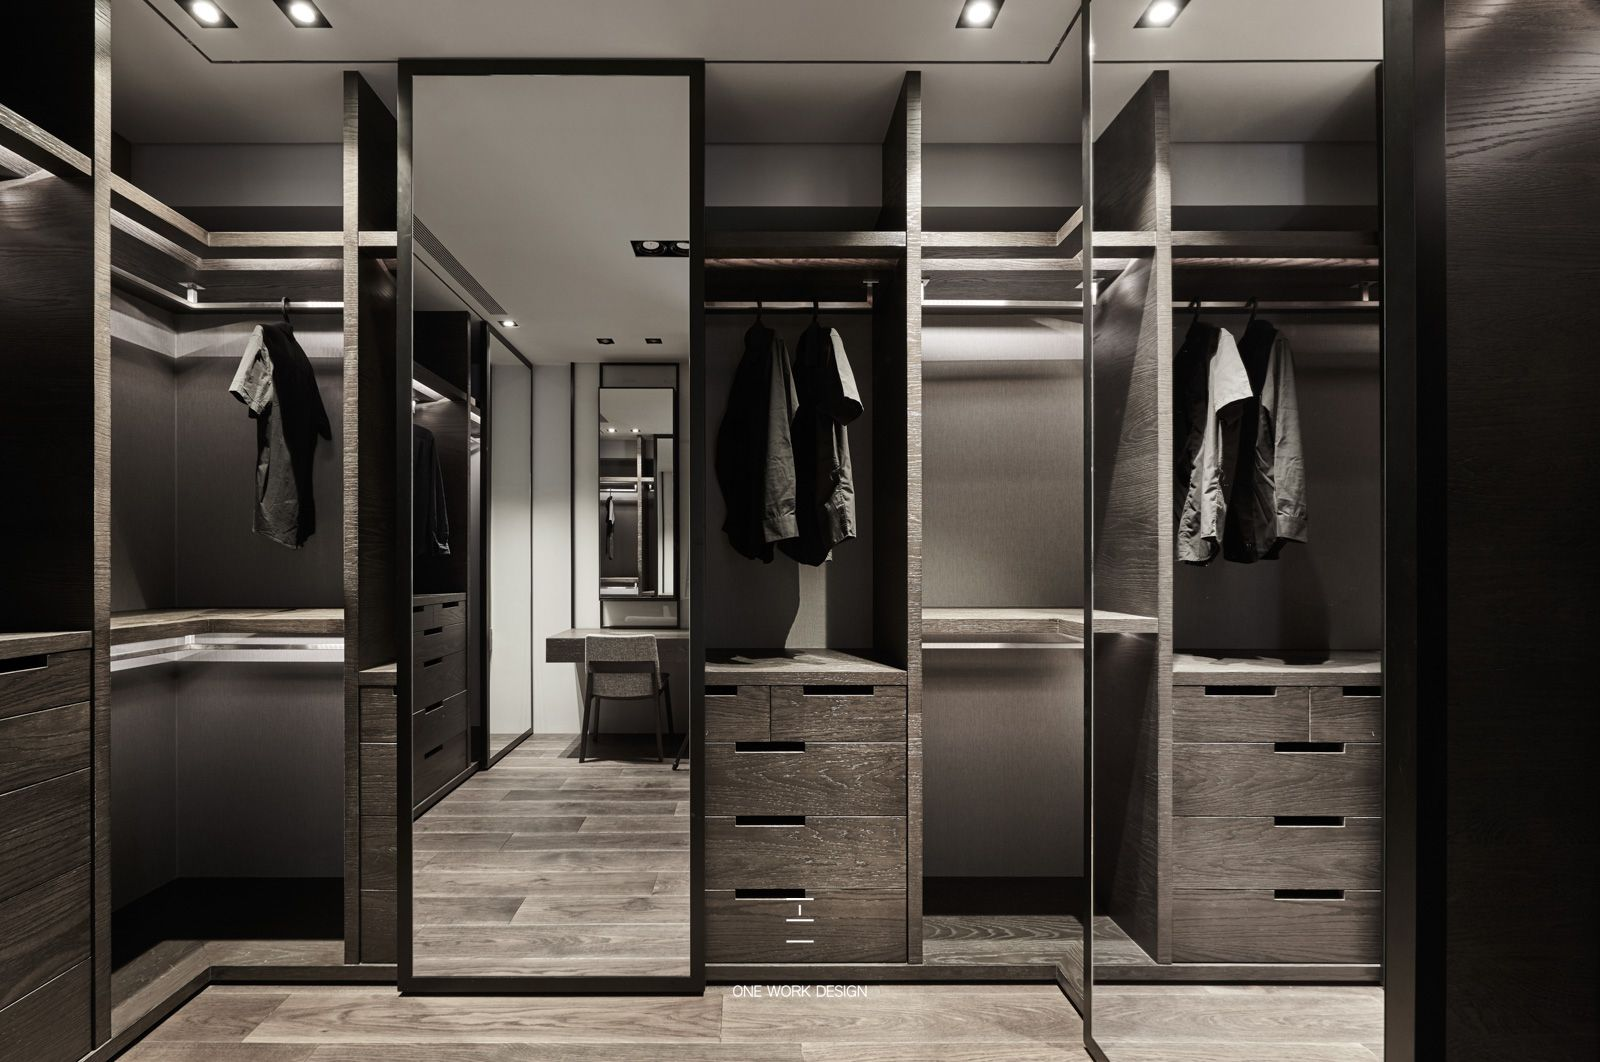 Molteni Divani Arosio Pin By Richard Hong On Walk In Closet In 2019 Wardrobe Design